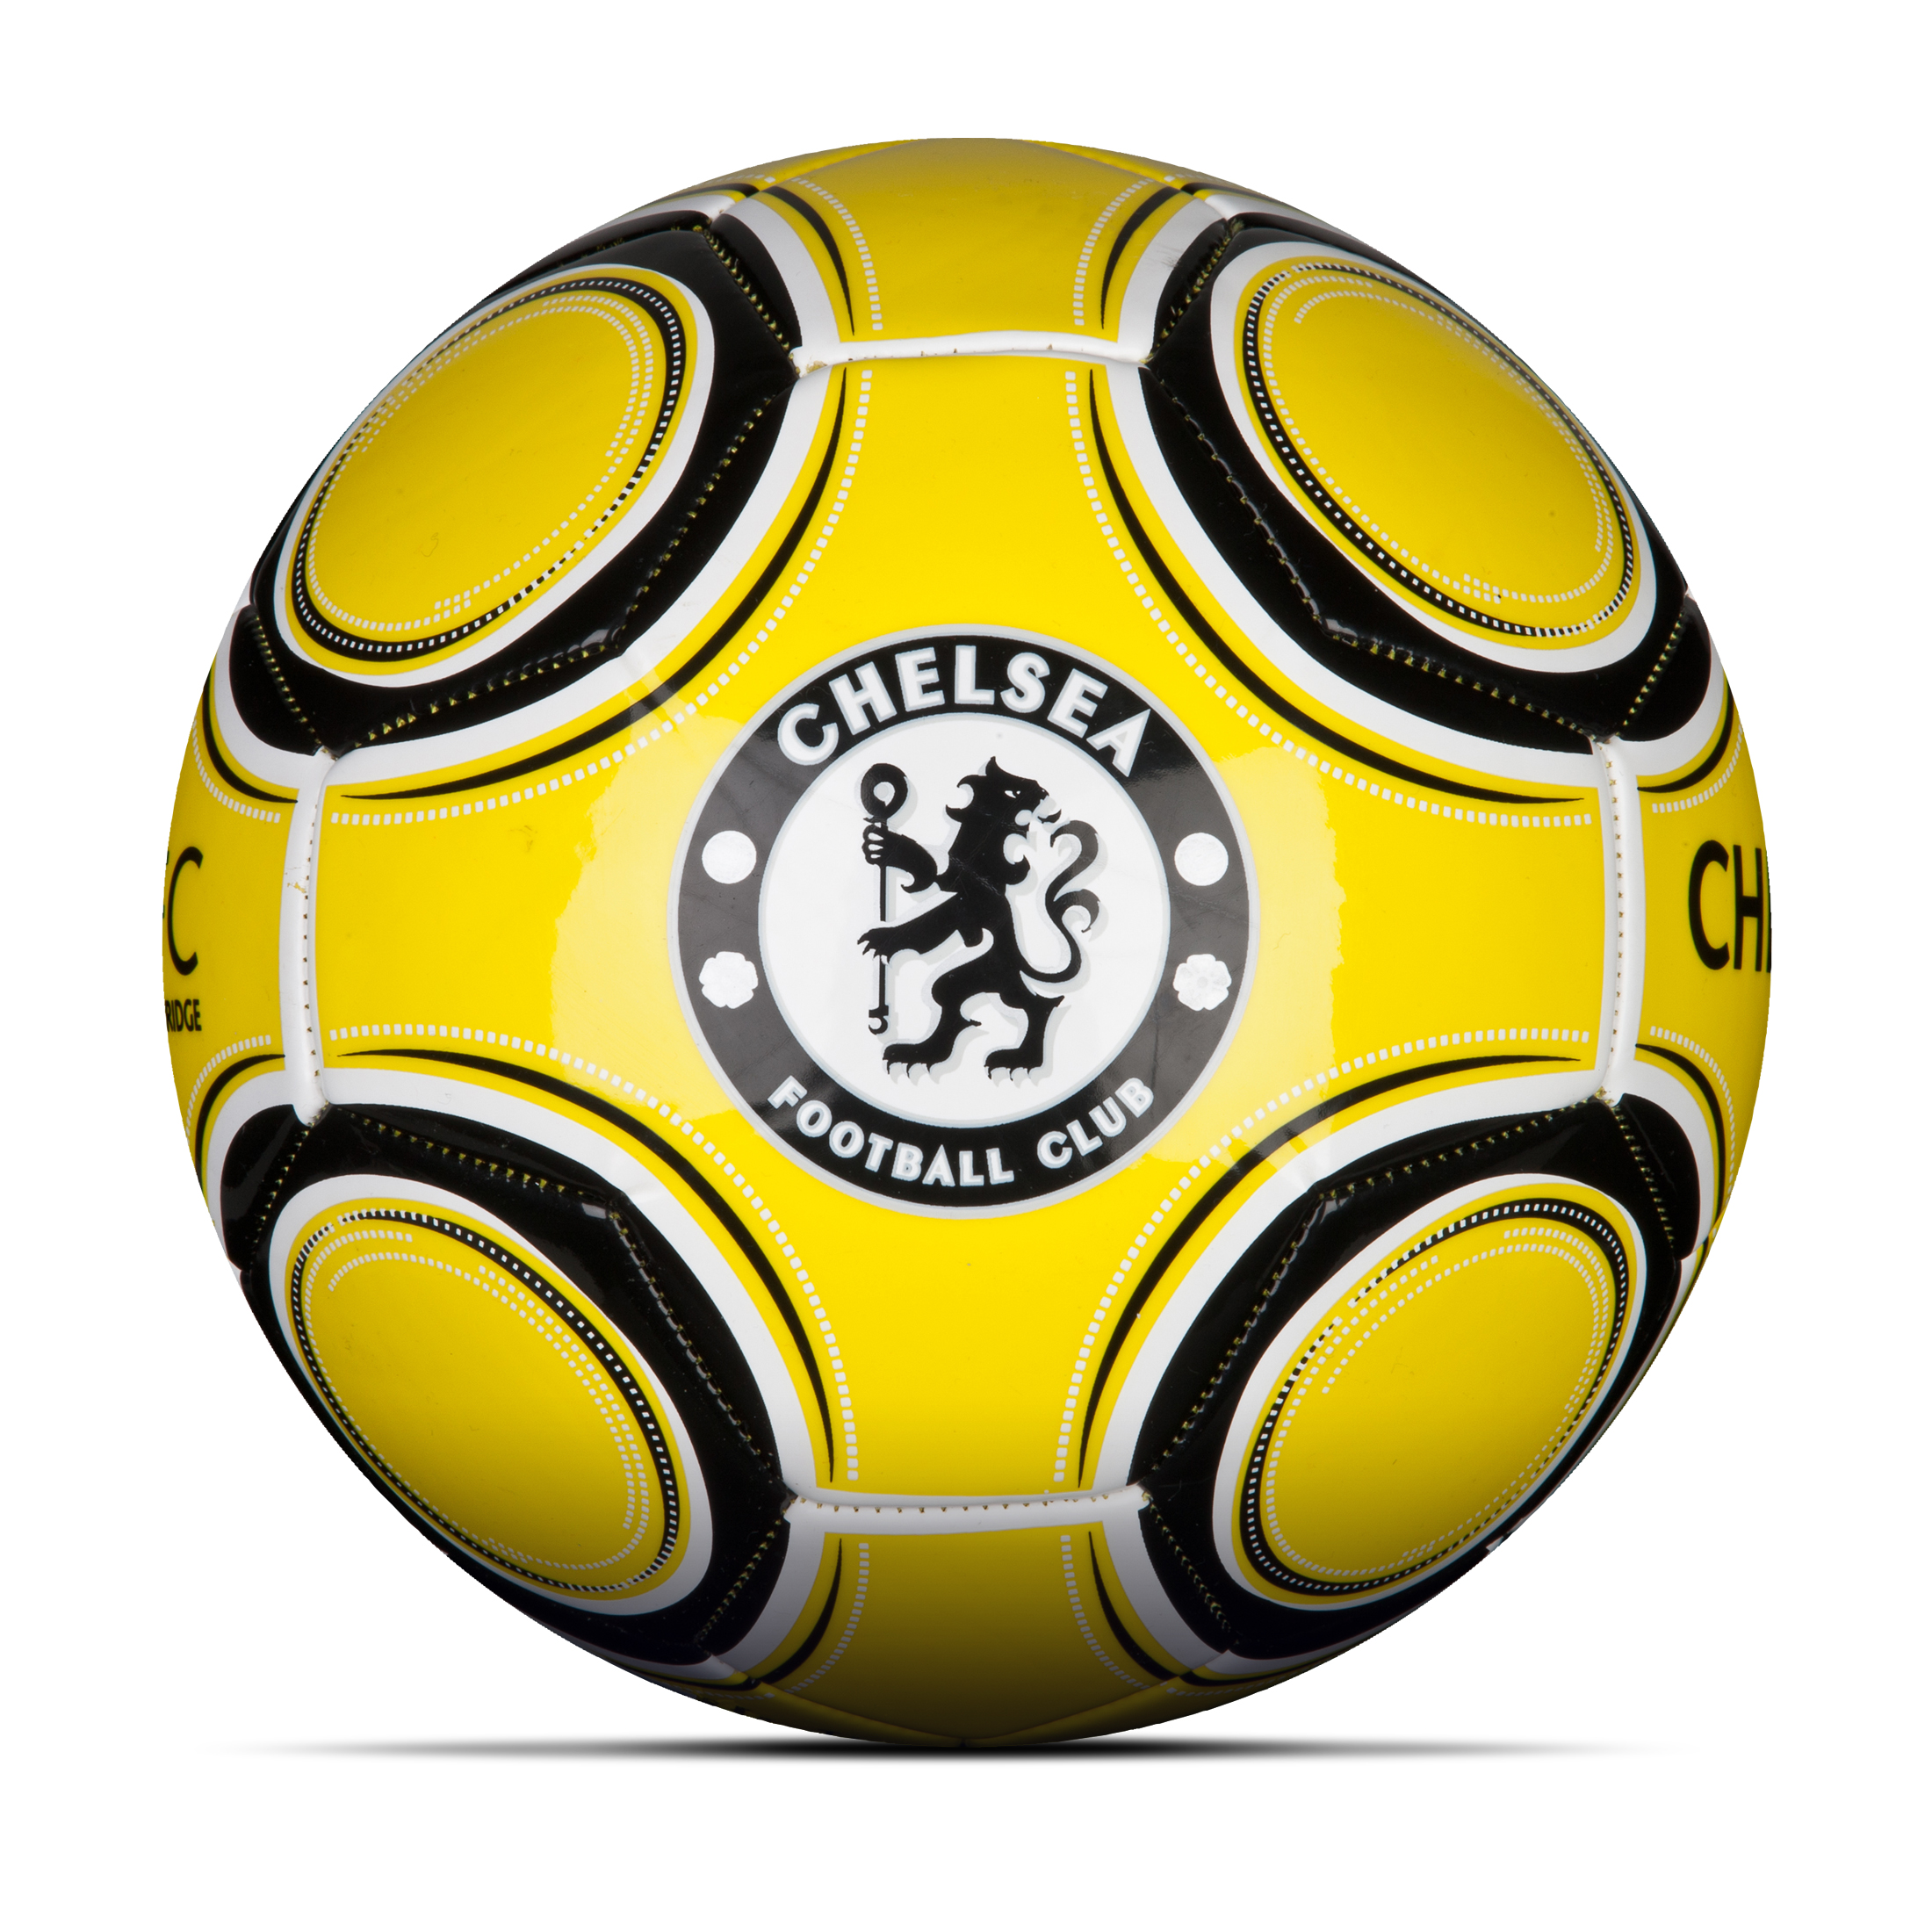 Chelsea Sphere Football - Size 5 - Fluorescent  Yellow